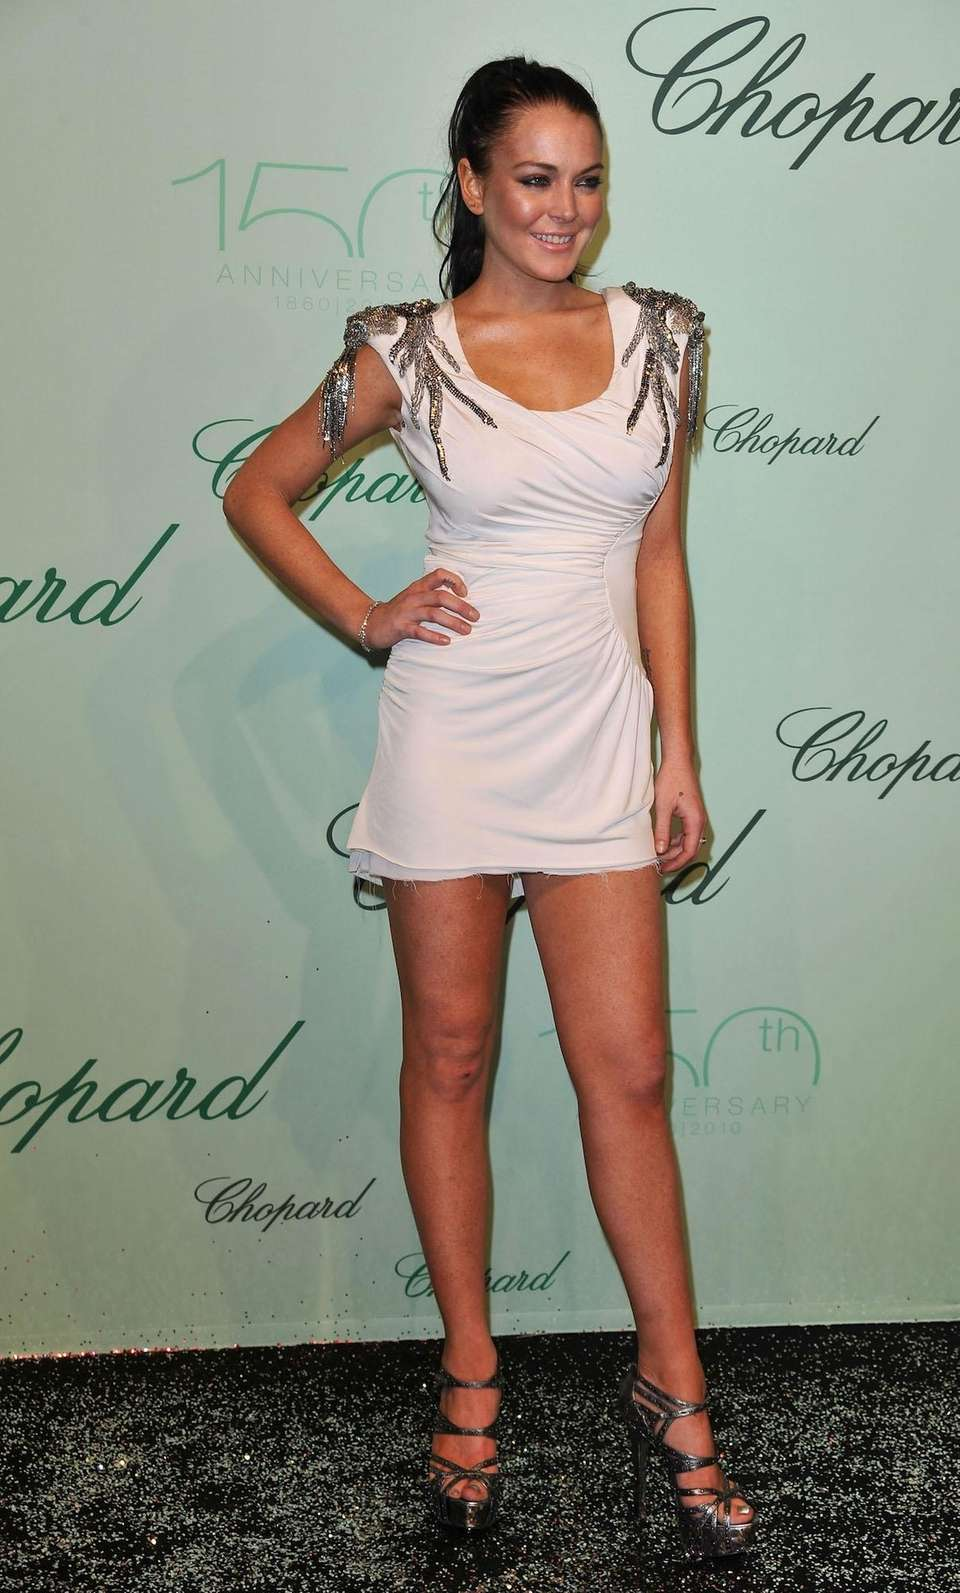 Lindsay Lohan attends the Chopard 150th anniversary party